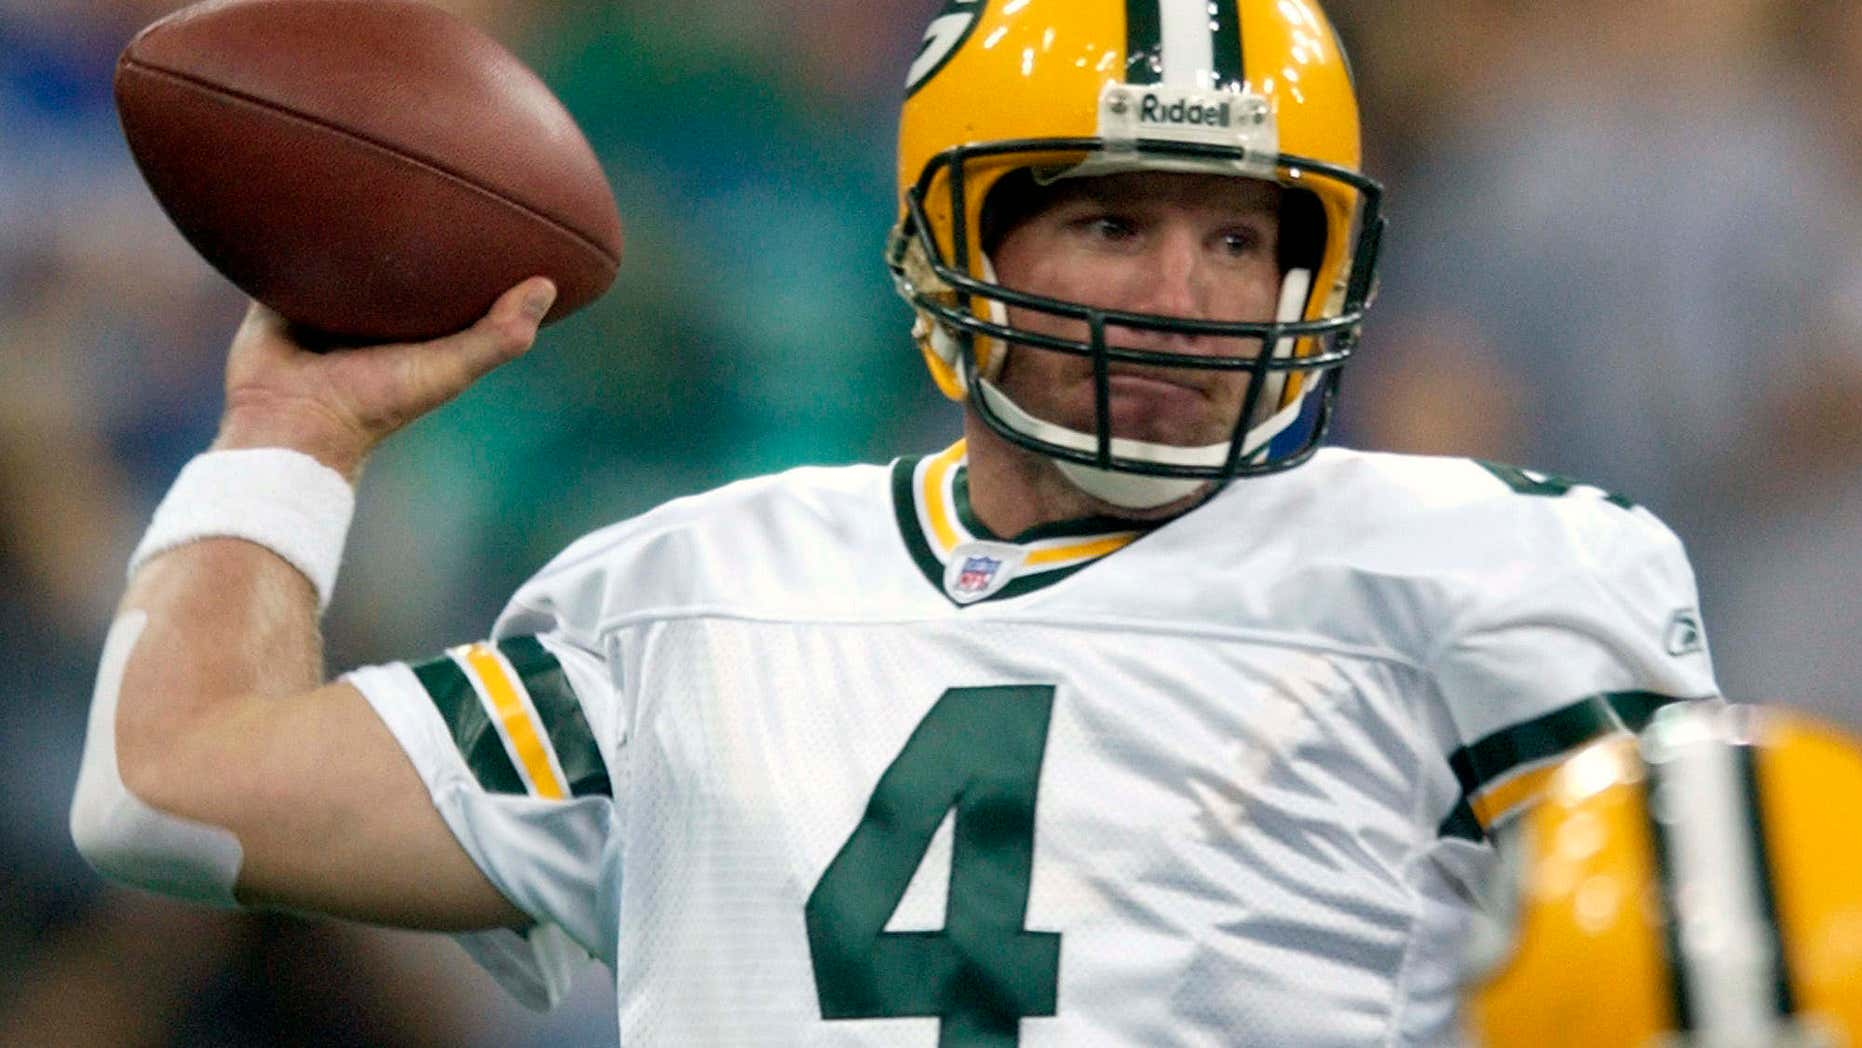 FILE - In this Sunday, Sept. 26, 2004 file photo, Green Bay Packers quarterback Brett Farve throws a pass in the first quarter against the Indianapolis Colts in Indianapolis.